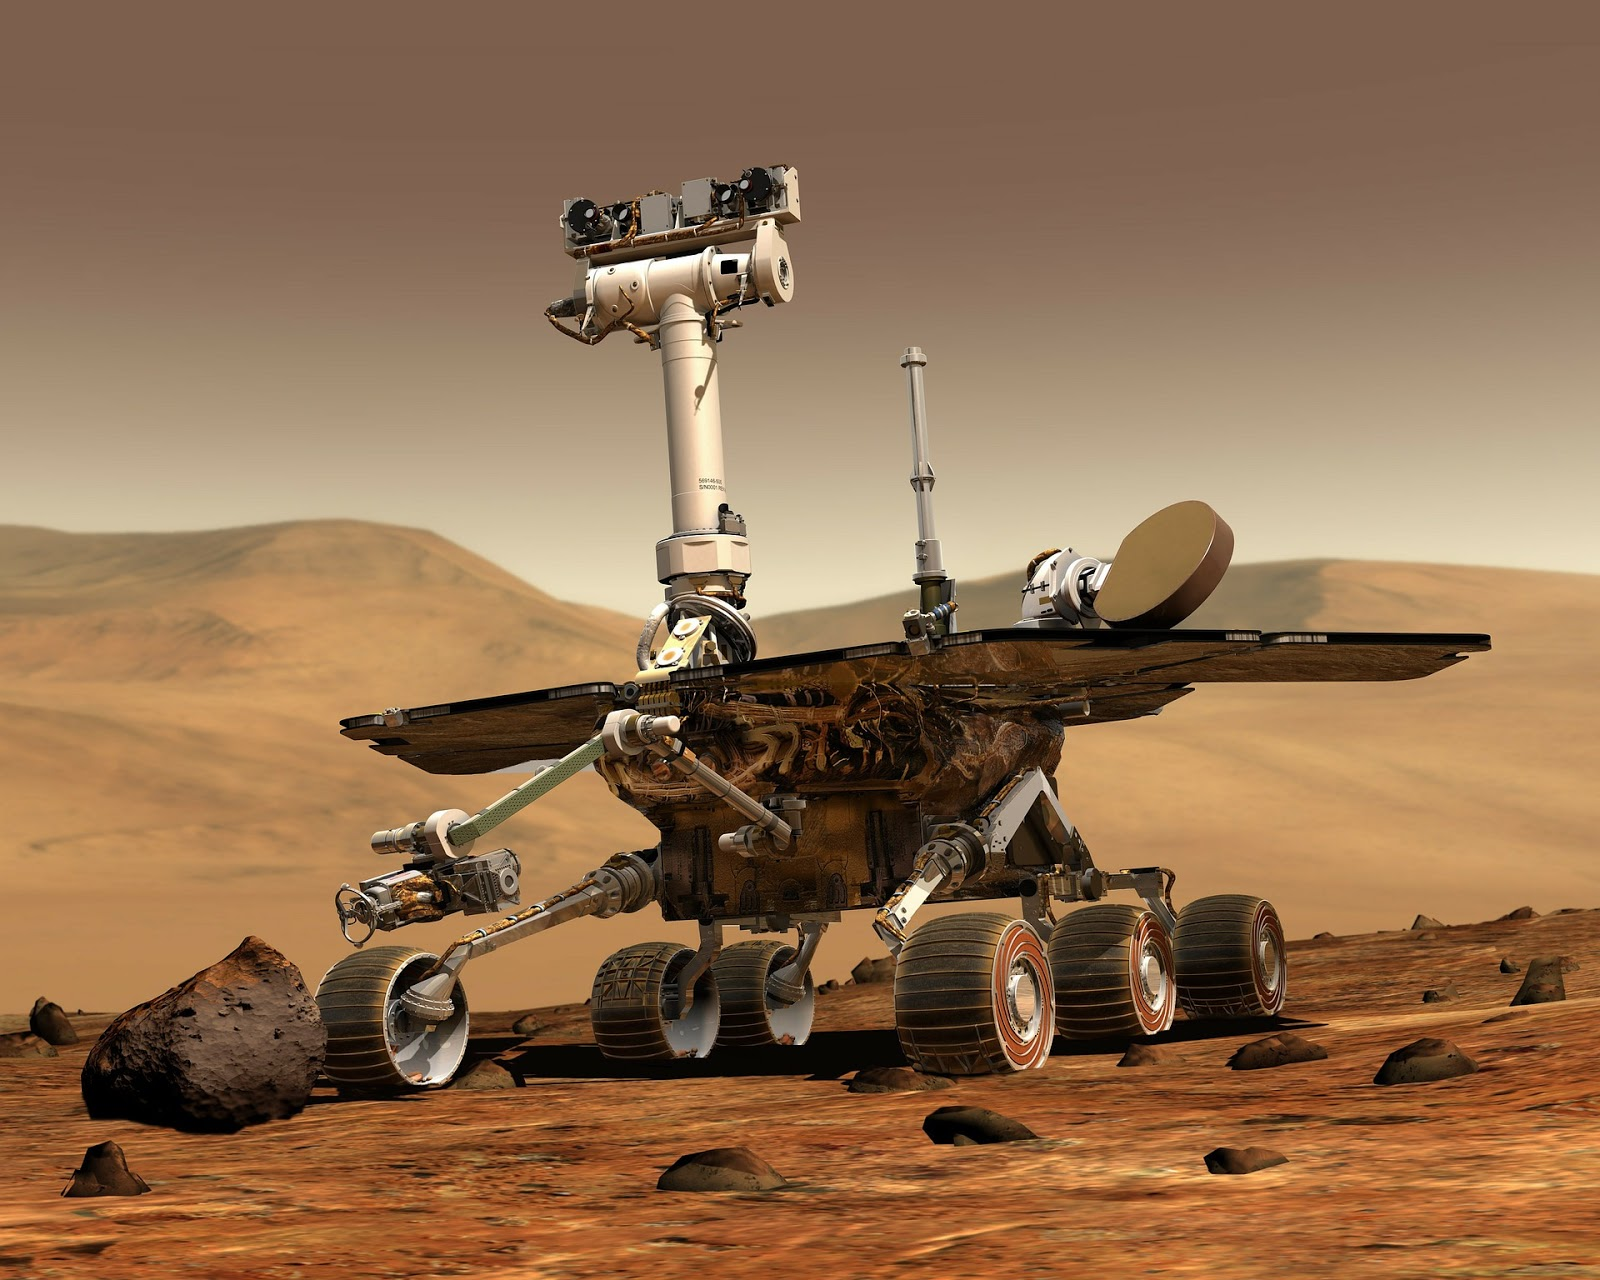 7 Super Cool Indoor Activities your Kids will Love in Sydney, Australia - Powerhouse museum Robot on Mars